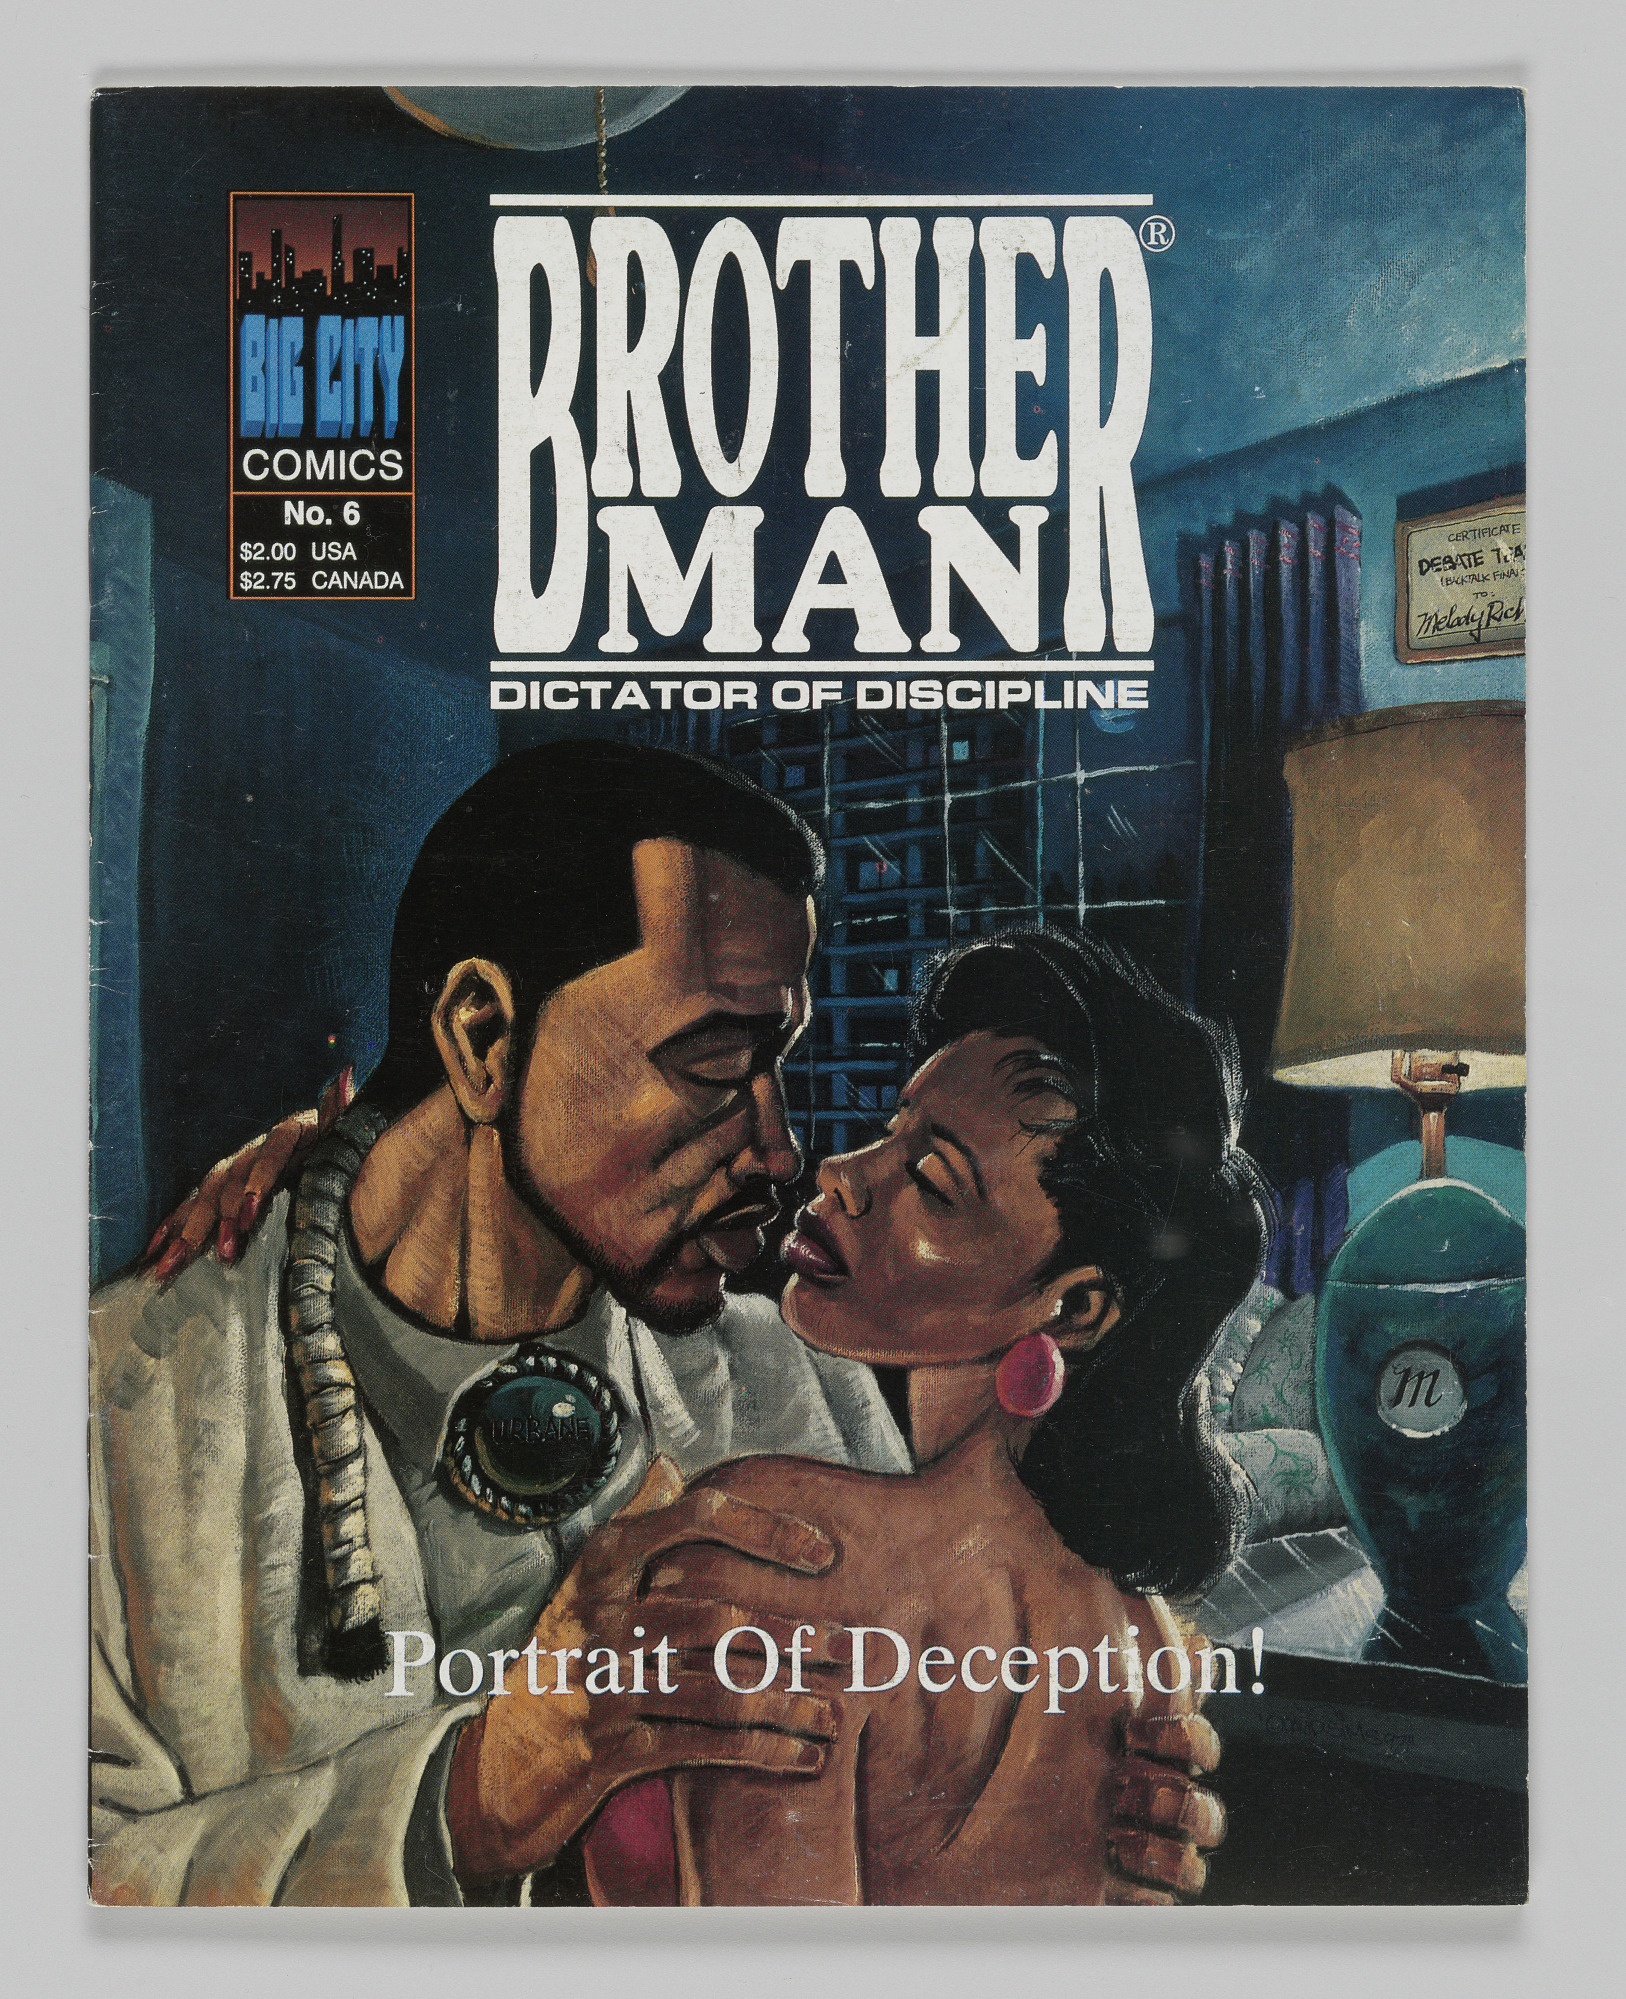 Image for Brotherman No. 6